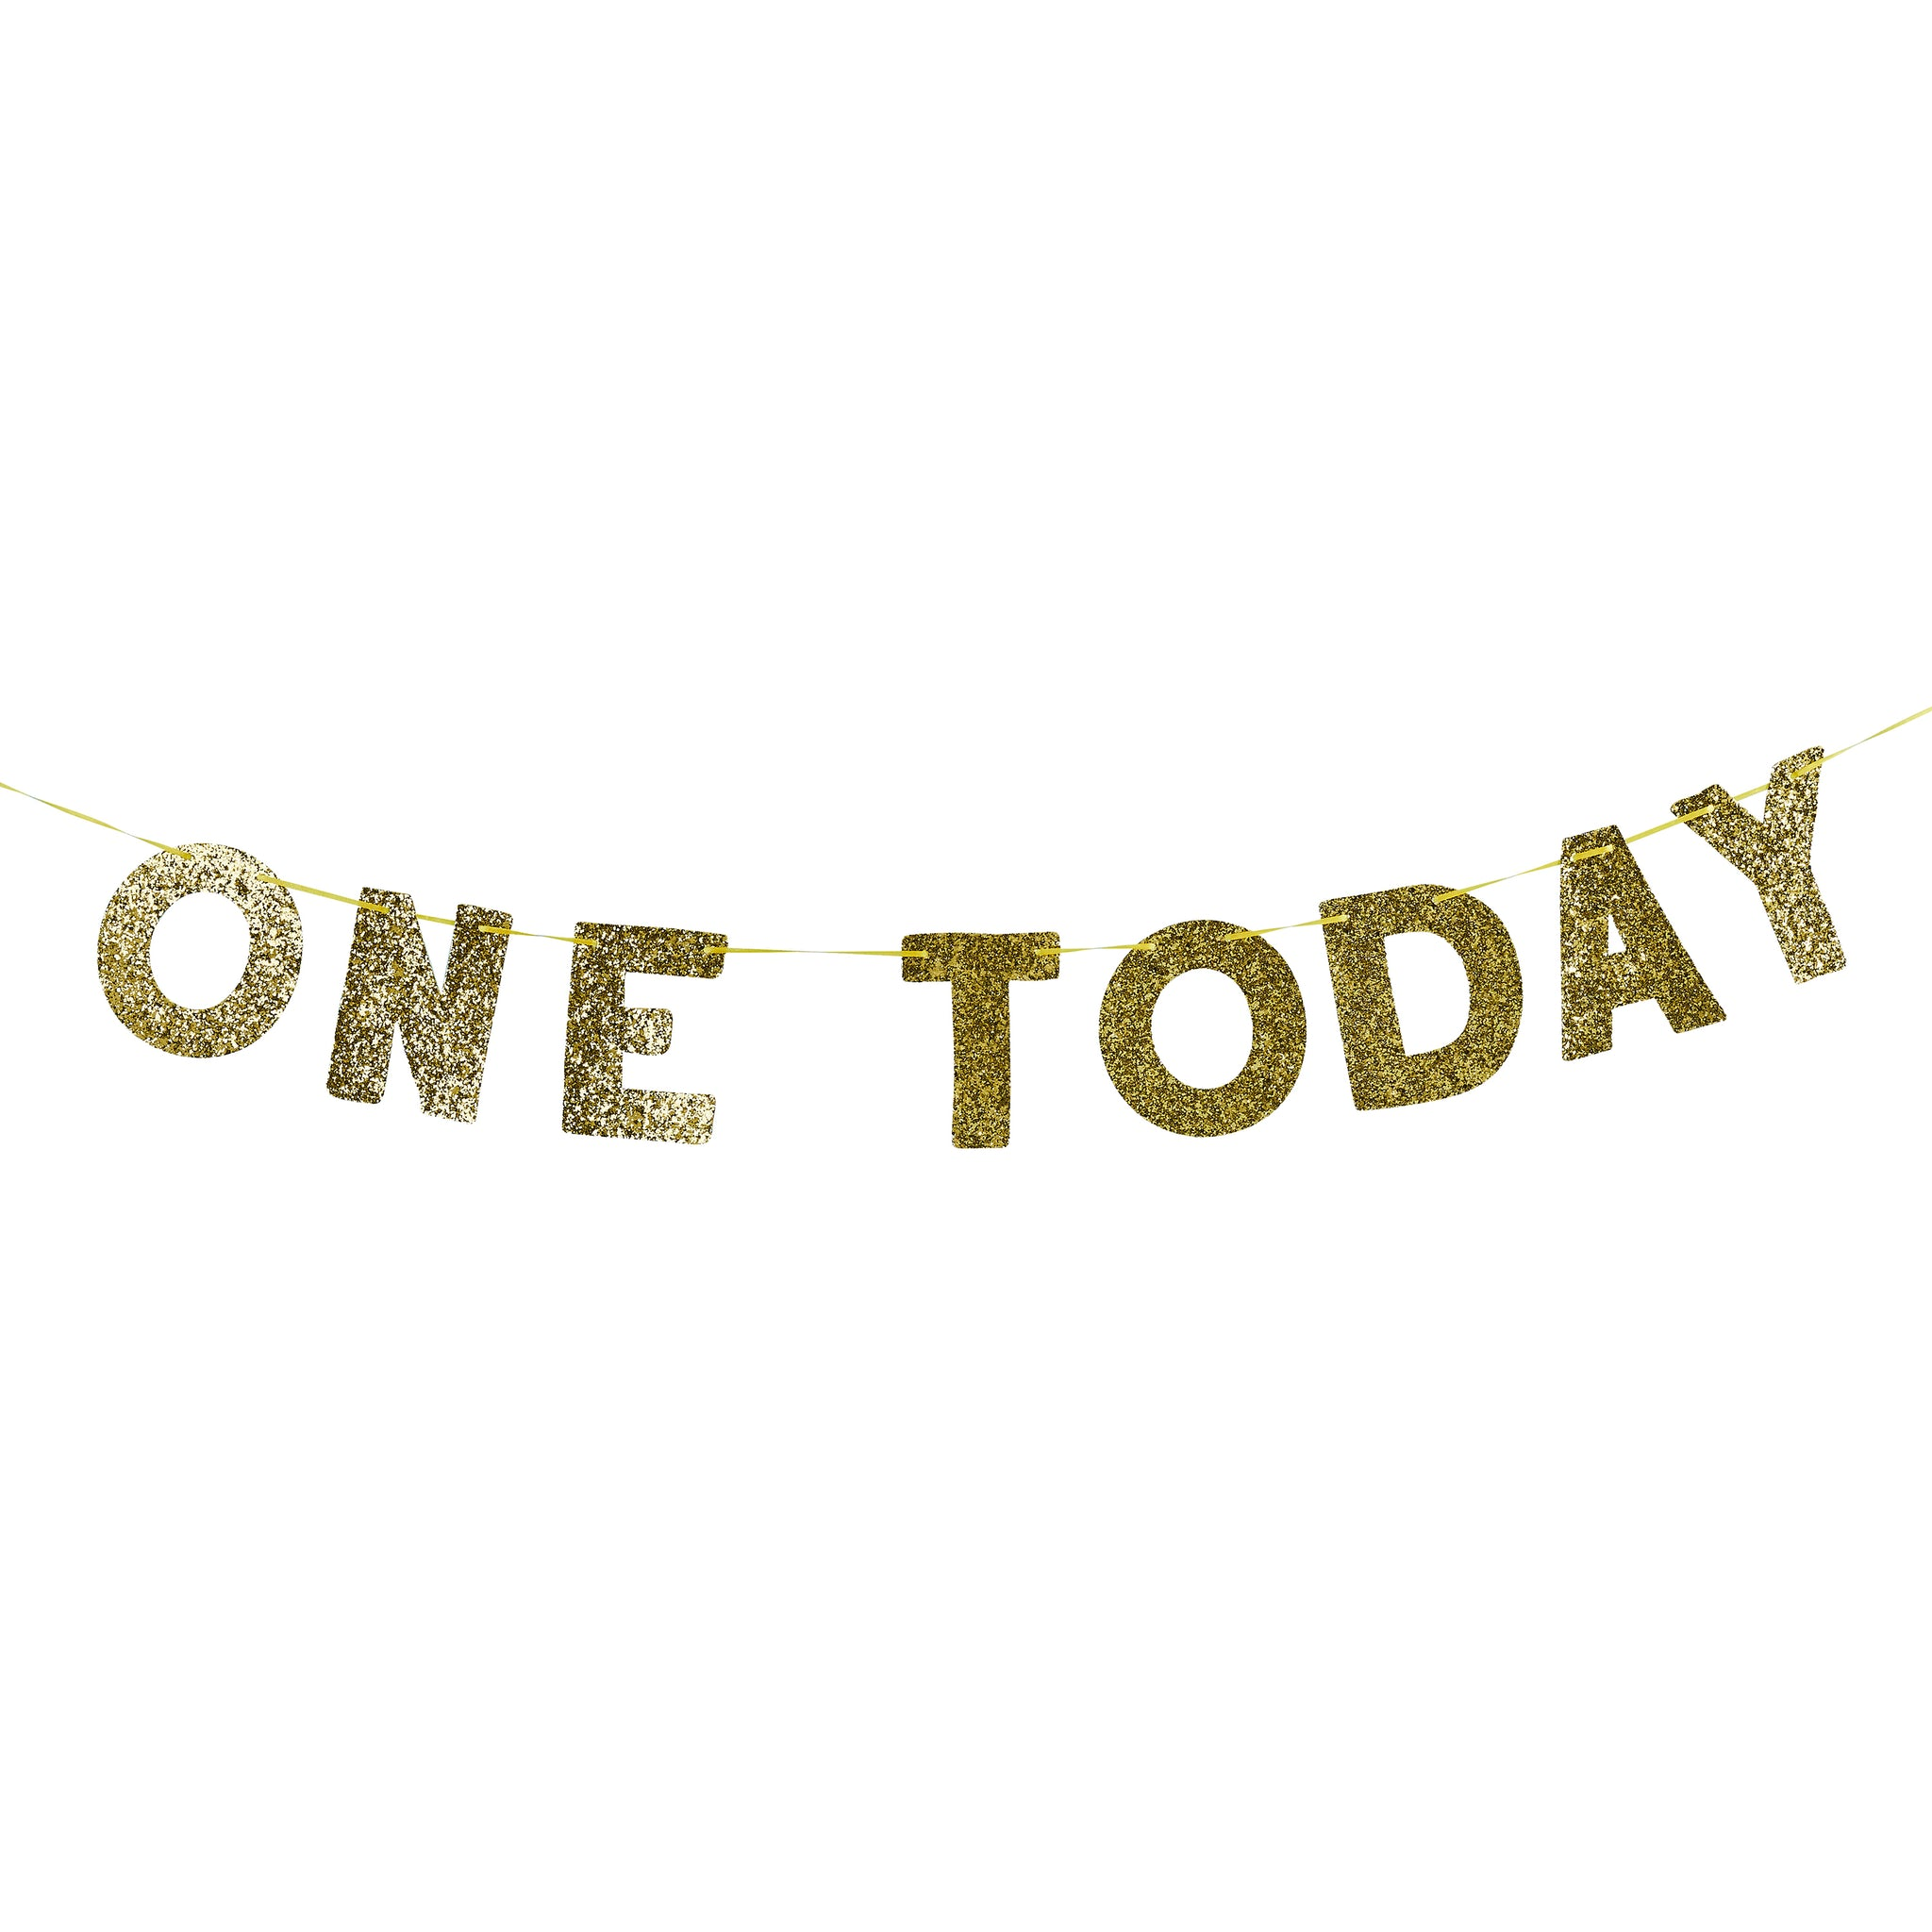 One Today Gold Glitter Banner 2M